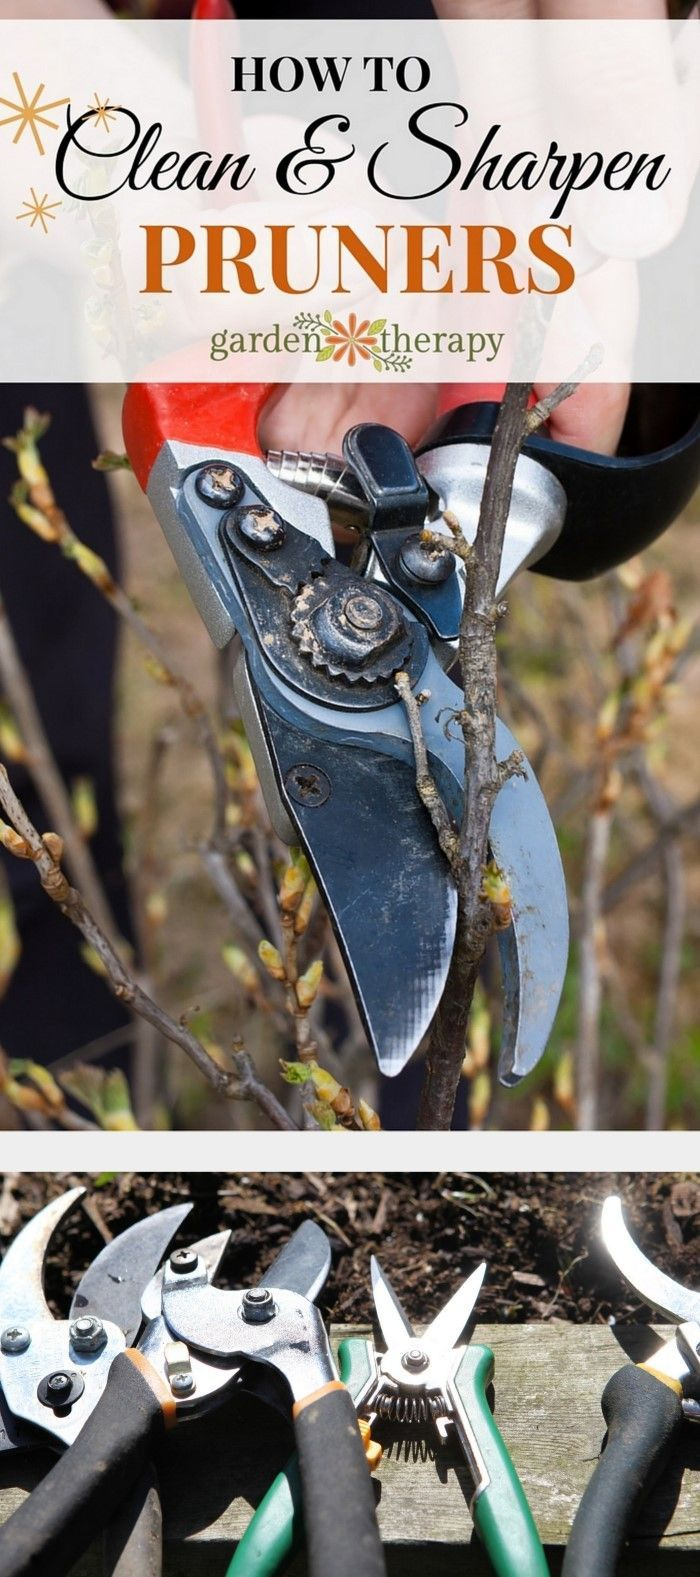 How to care for pruners - It is easy to neglect caring for pruners, but with proper sharpening and regular cleaning, they will last longer and perform much better. Follow these simple steps to keep your pruners in tip-top shape, so you can use them to keep your plants in tip-top shape.